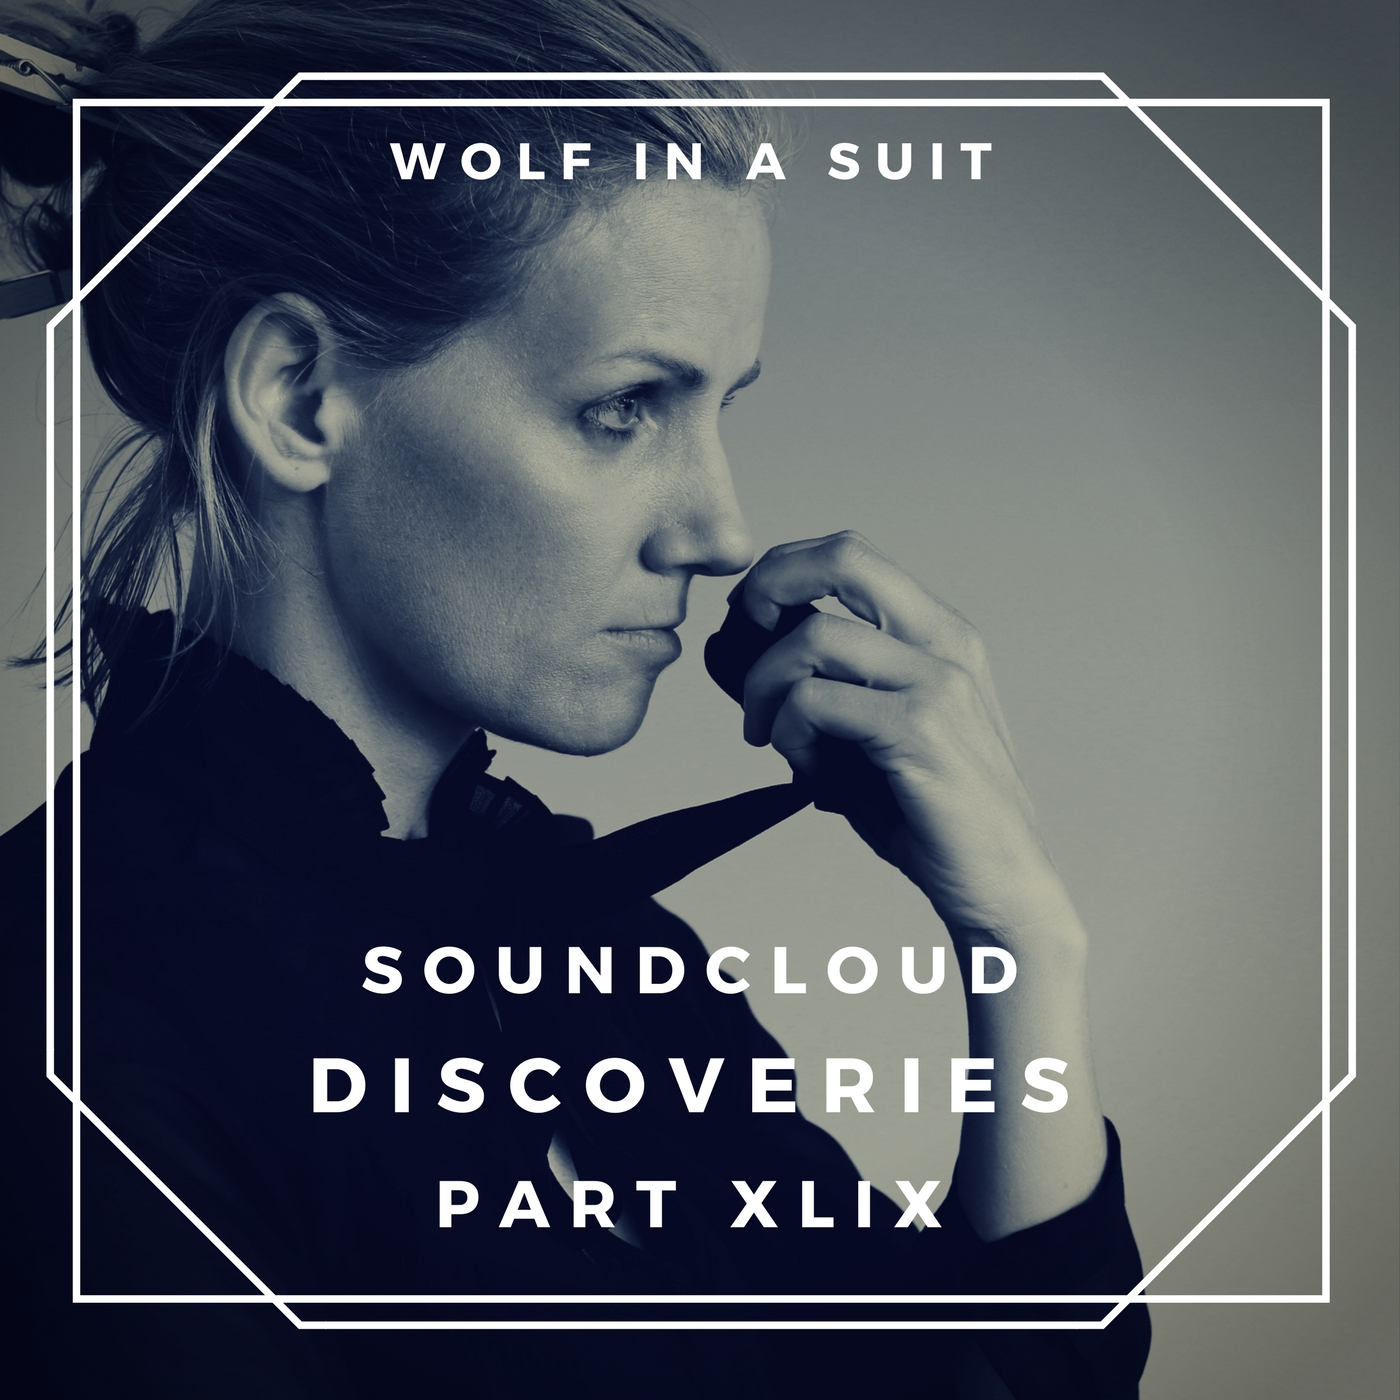 Playlist- Soundcloud Discoveries Part XLIX-new music-indie-indie music-indie pop-indie rock-indie folk-music blog-indie blog-wolf in a suit-wolfinasuit